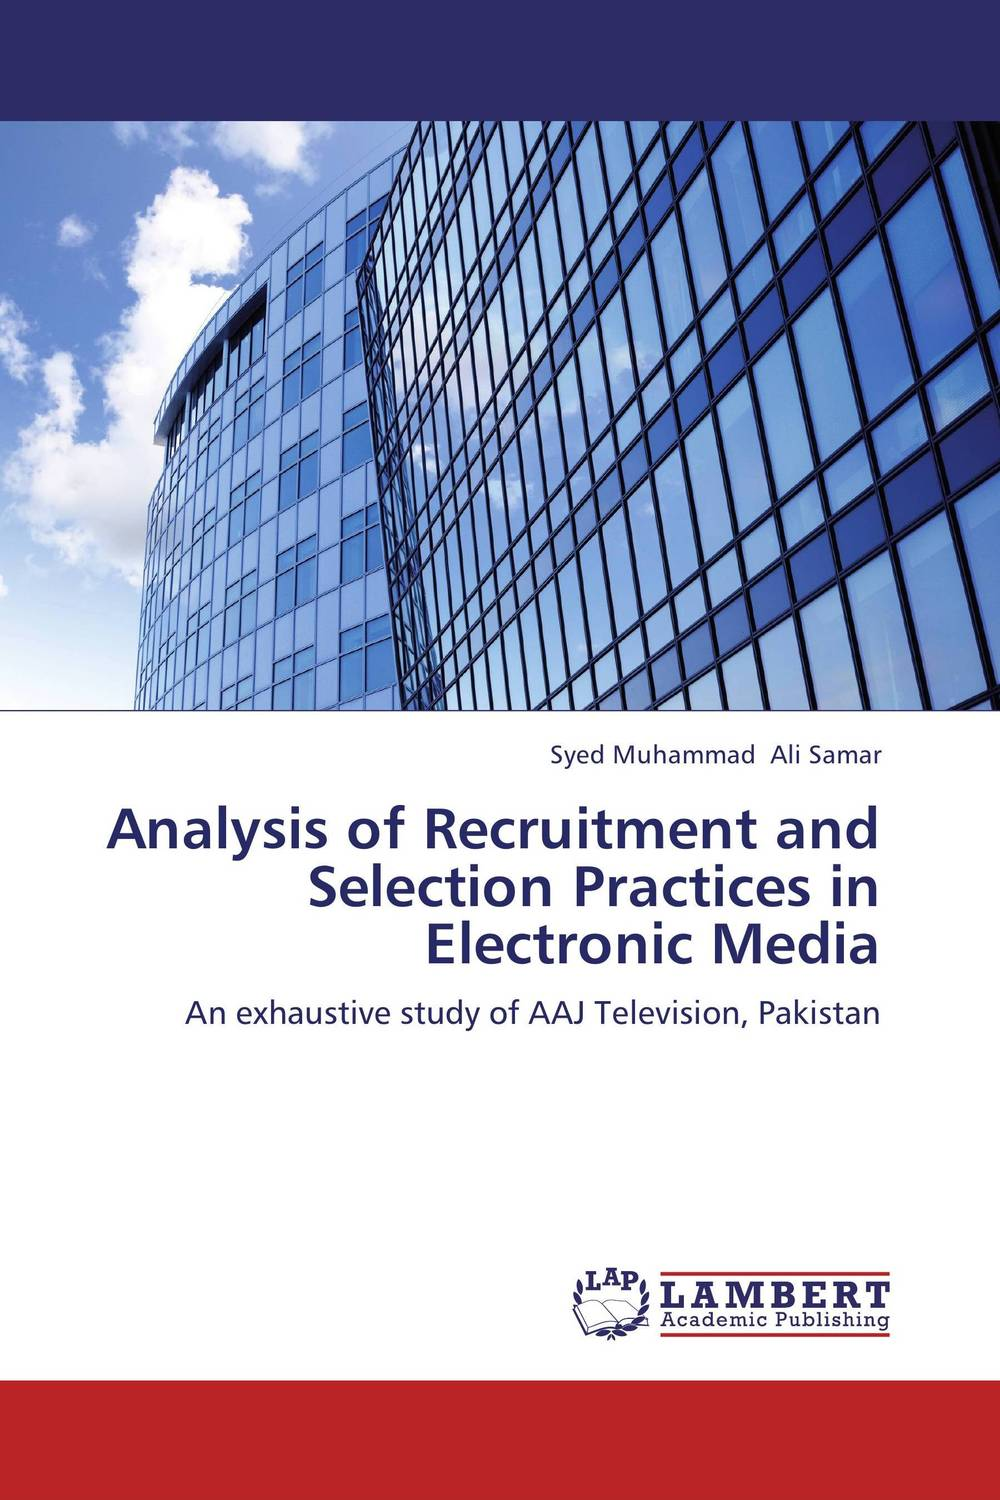 Analysis of Recruitment and Selection Practices in Electronic Media mehdi mohammadi poorangi piao hui ying and arash najmaei e hrm strategies for recruitment